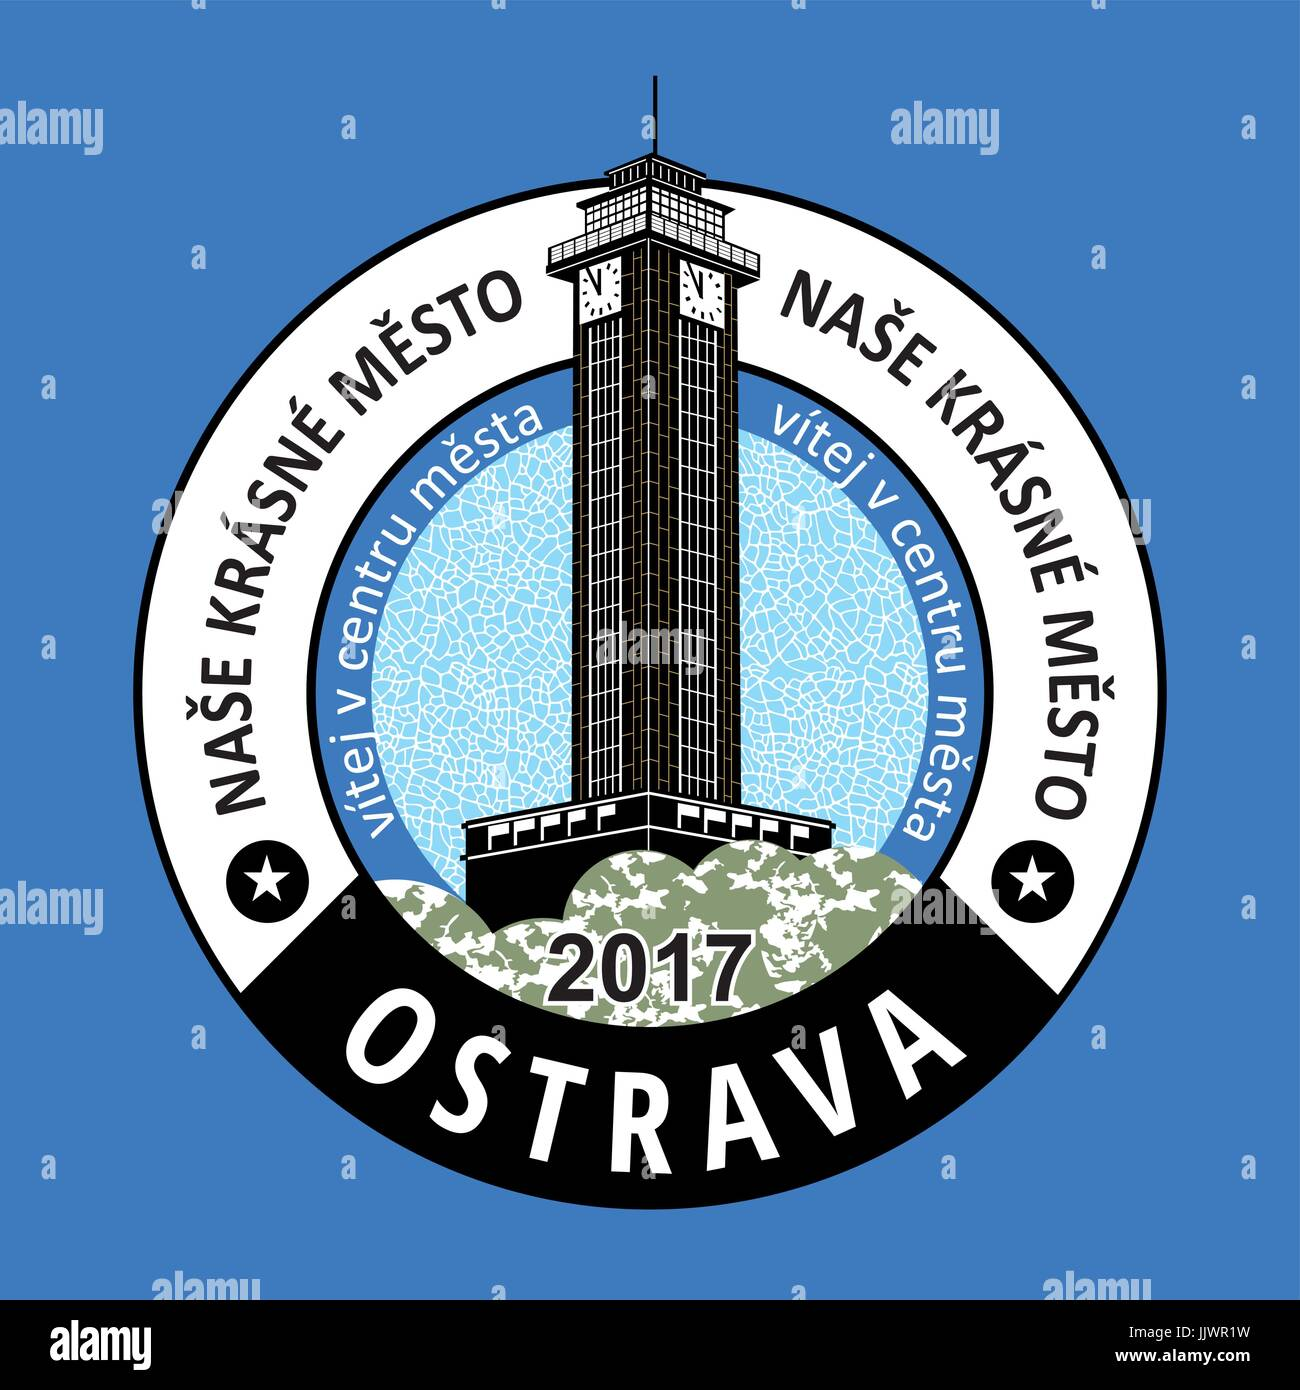 Ostrava (Polish Ostrawa, German Ostrau) is a statutory and university city in the northeast of the Czech Republic - Stock Vector